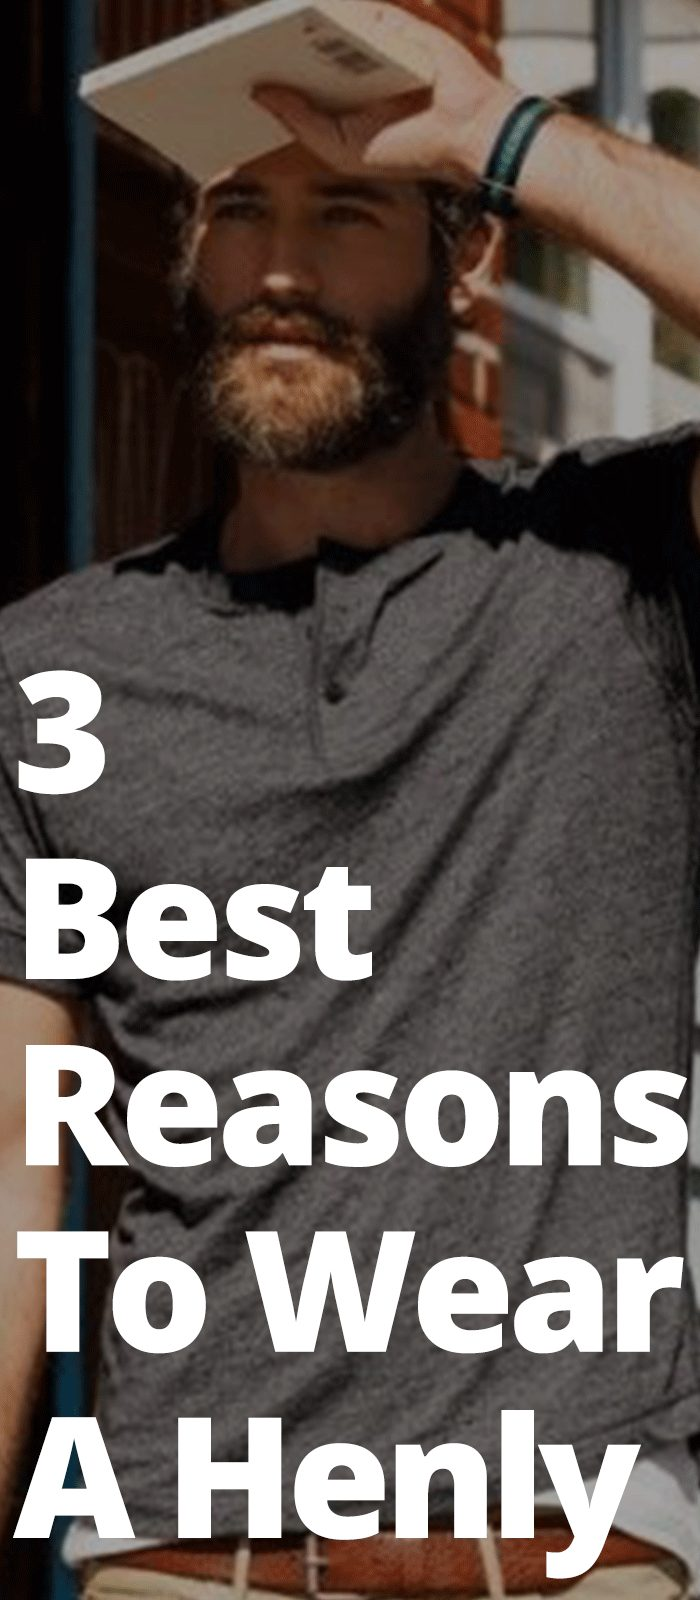 3 Best Reasons To Wear A Henly